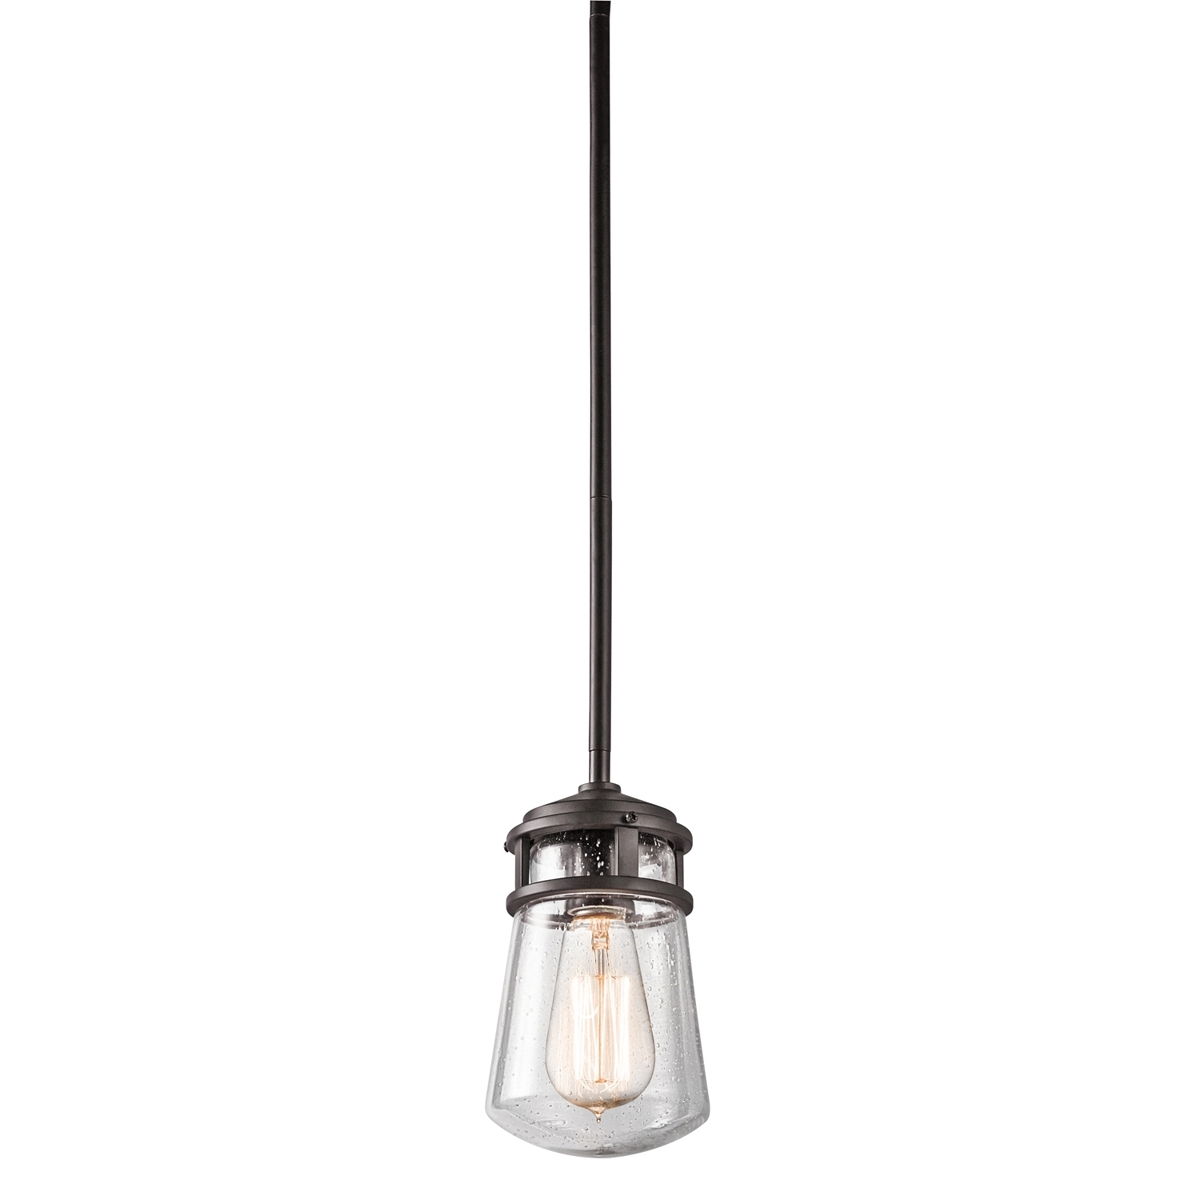 Industrial Outdoor Hanging Lights With Regard To Latest Industrial, Outdoor Hanging Lights, Outdoor Lights – Lamps Expo (View 8 of 20)